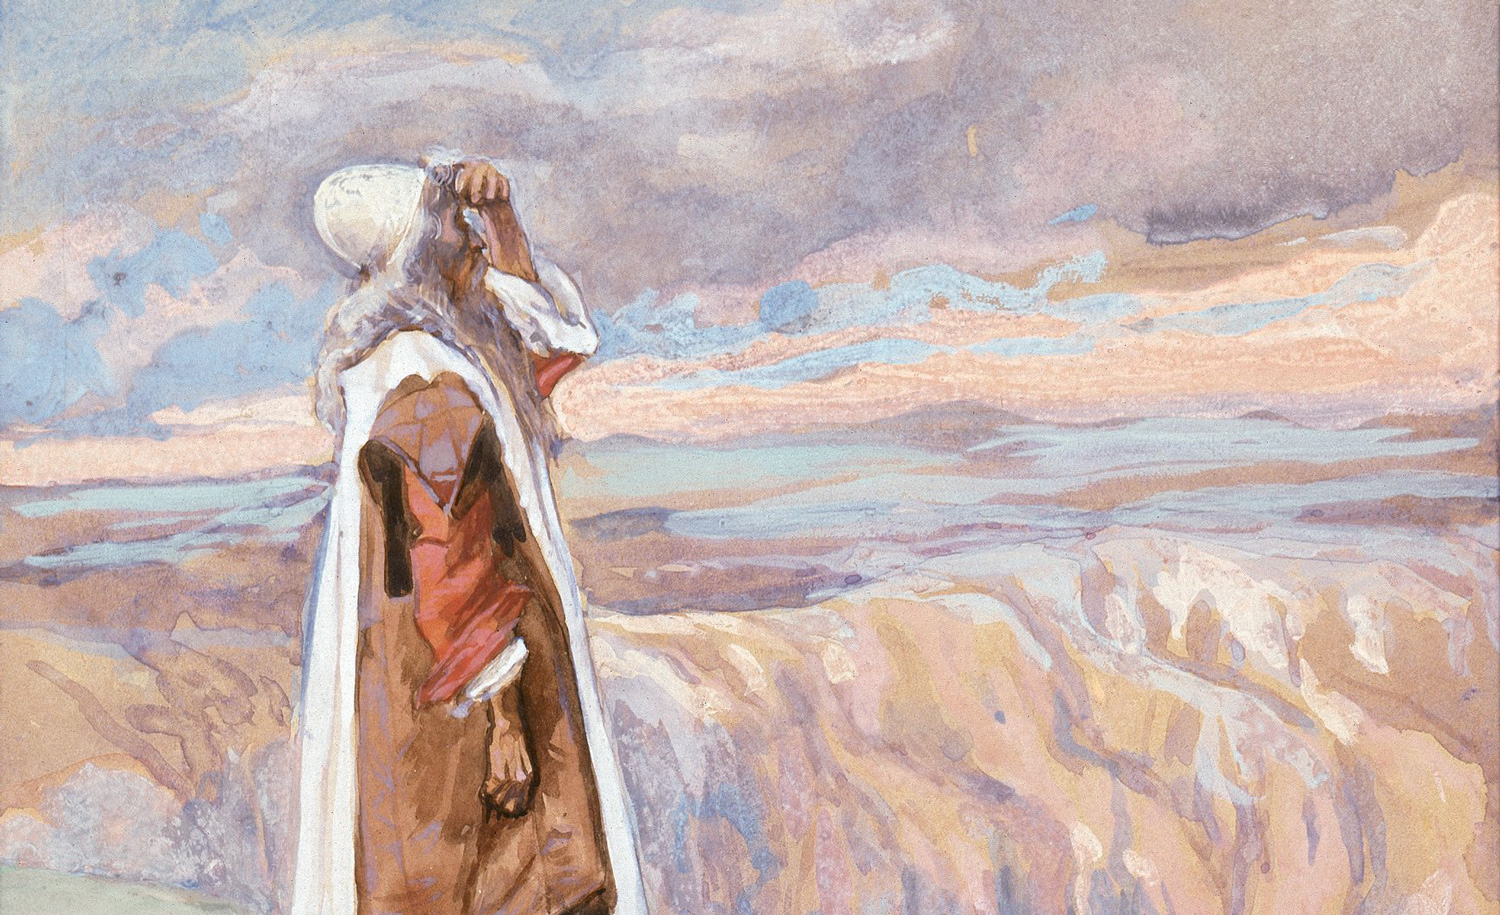 From Moses Sees the Promised Land From Afar, c. 1896-1902, by James Tissot. Jewish Museum.